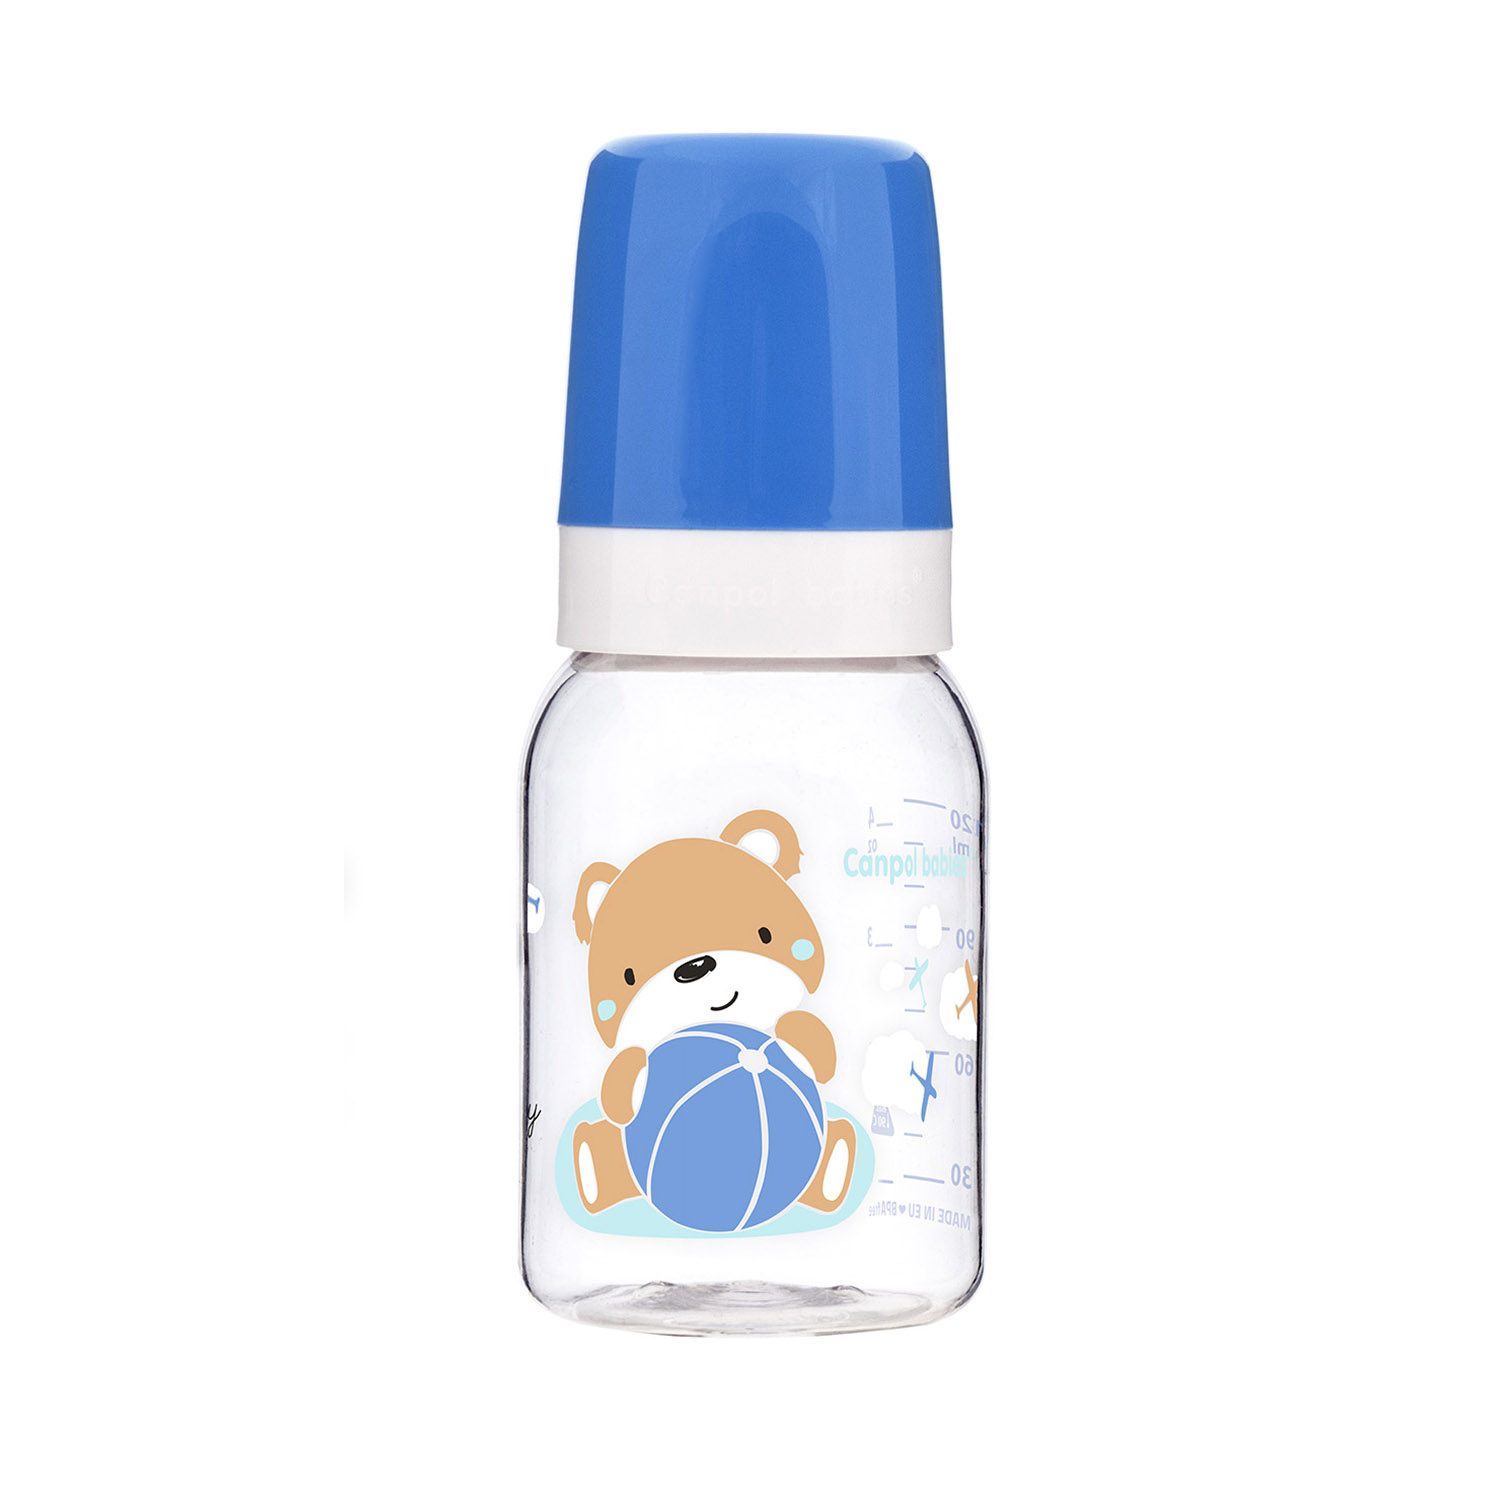 Canpol babies Narrow Neck Bottle 120ml SWEET FUN blue